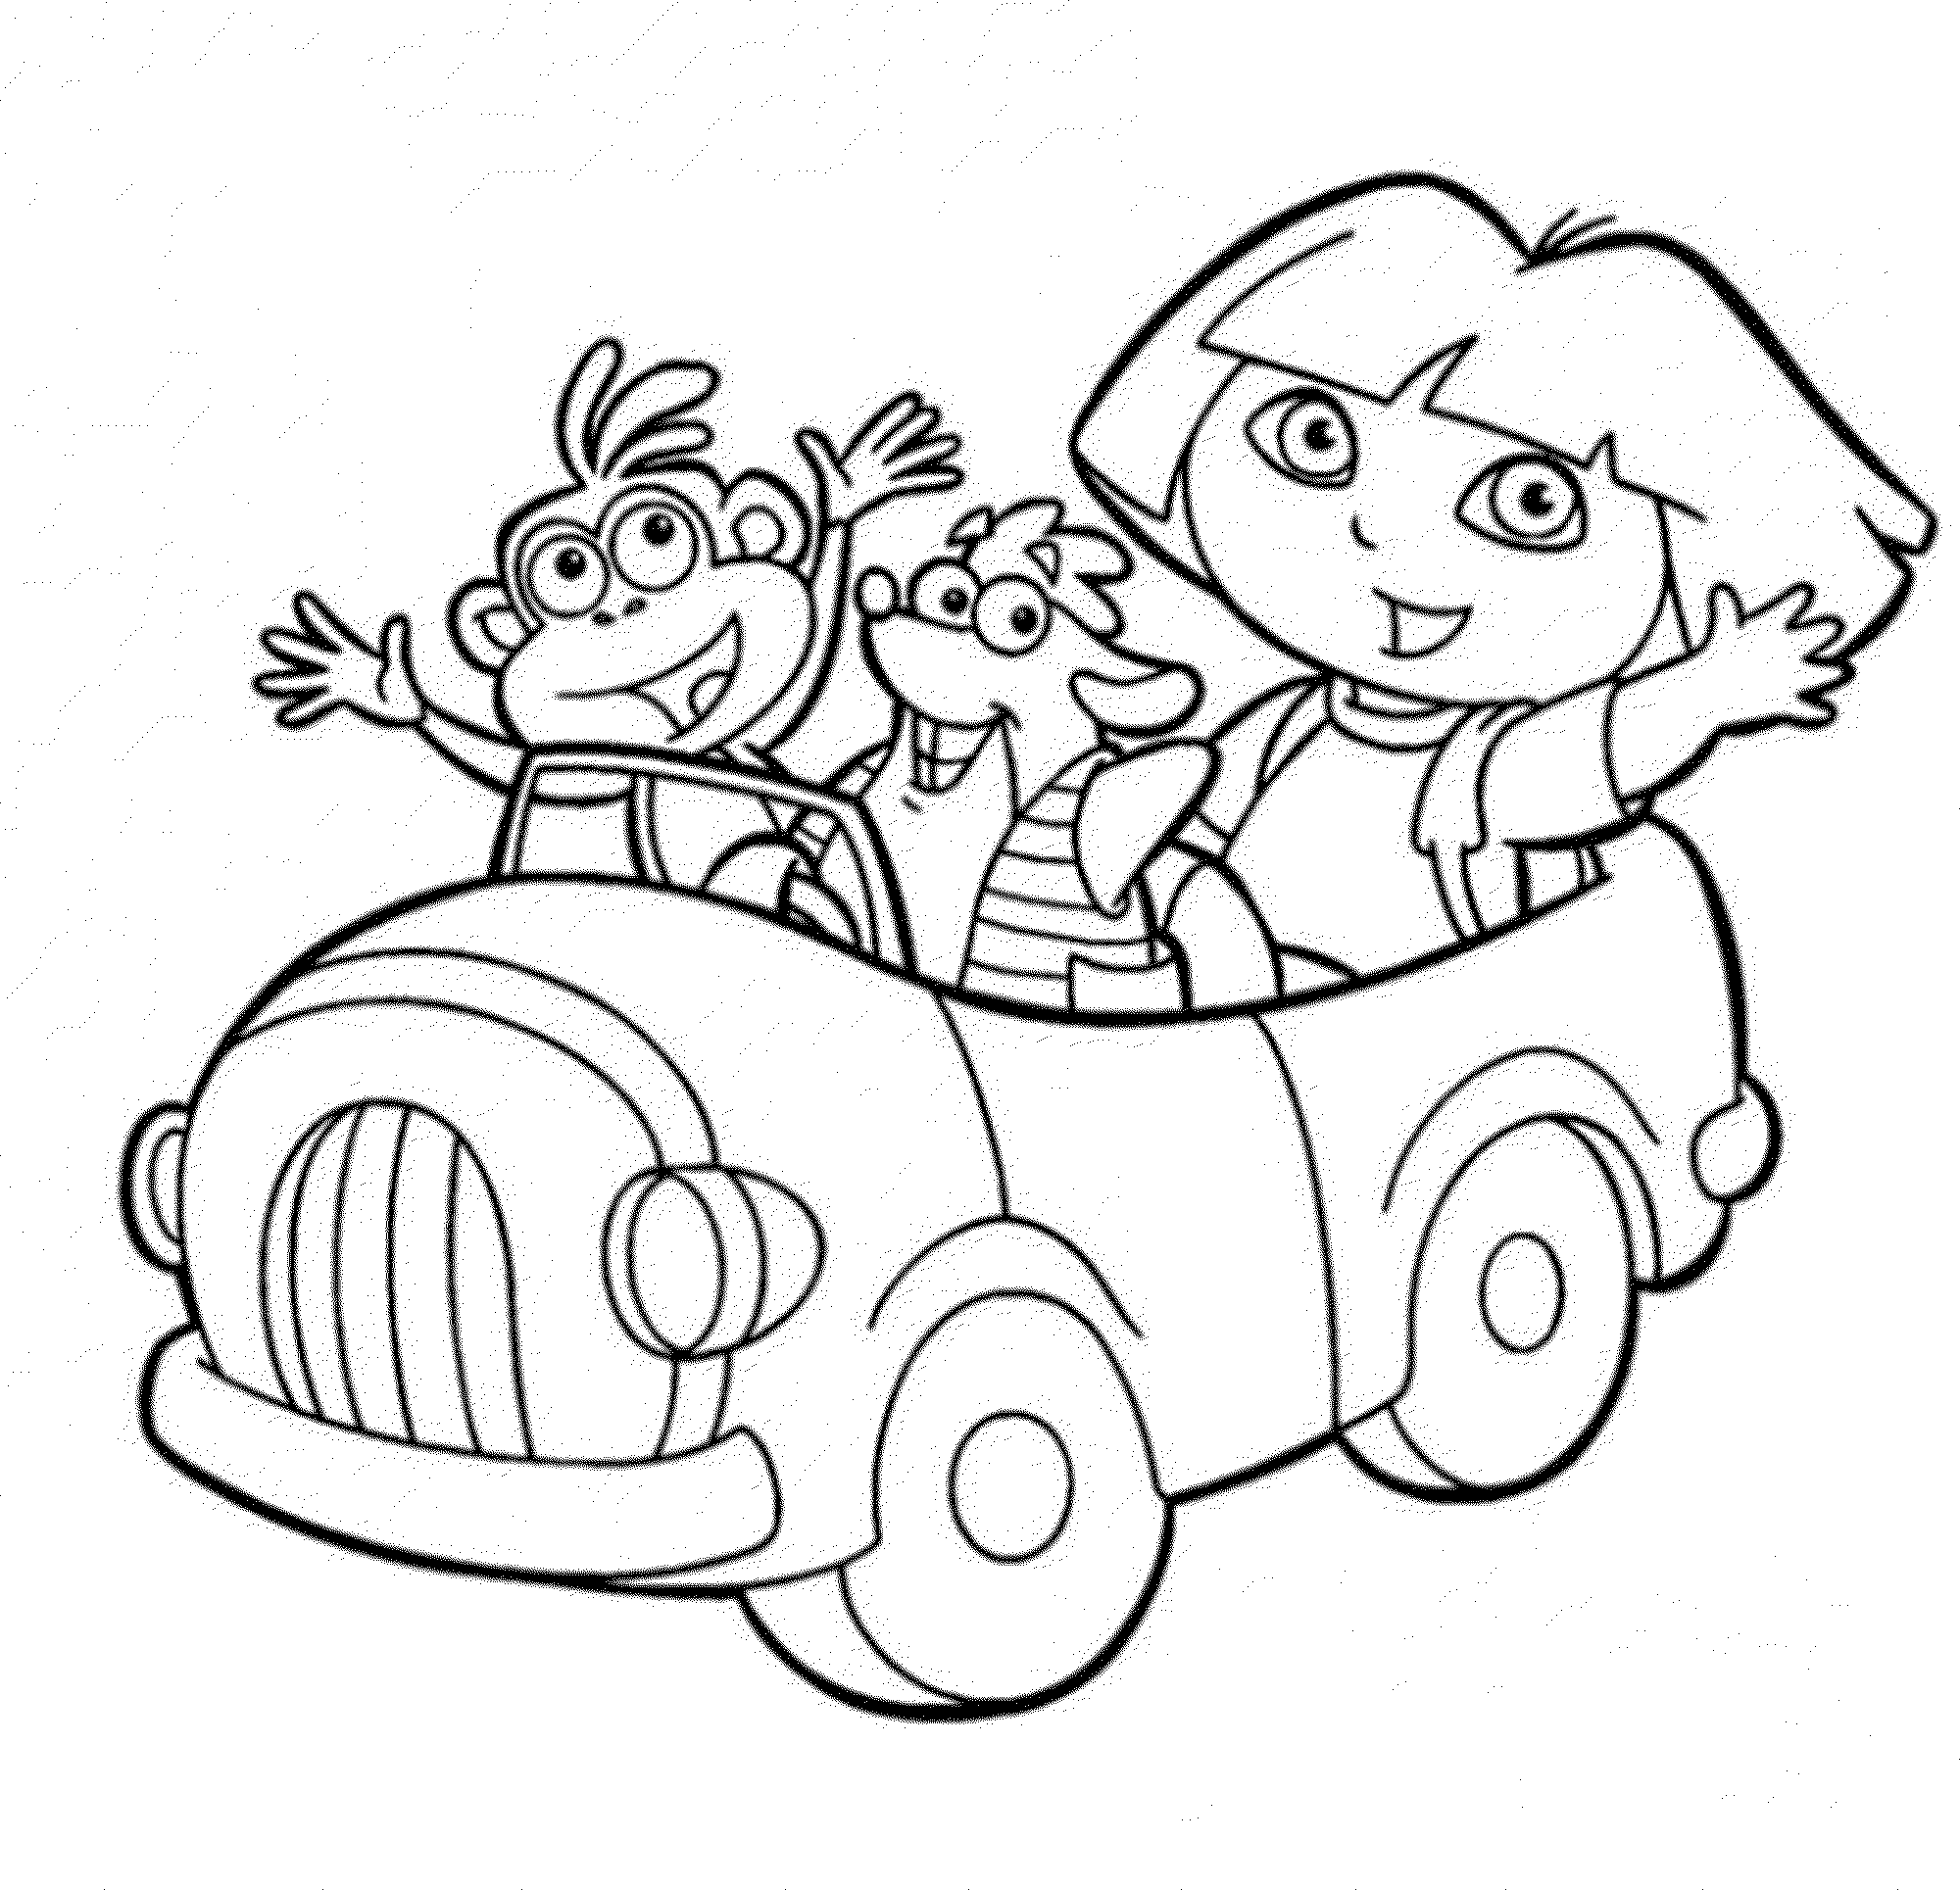 2000x1929 Awesome Dora The Explorer Coloring Pages Print Car Printable Kids